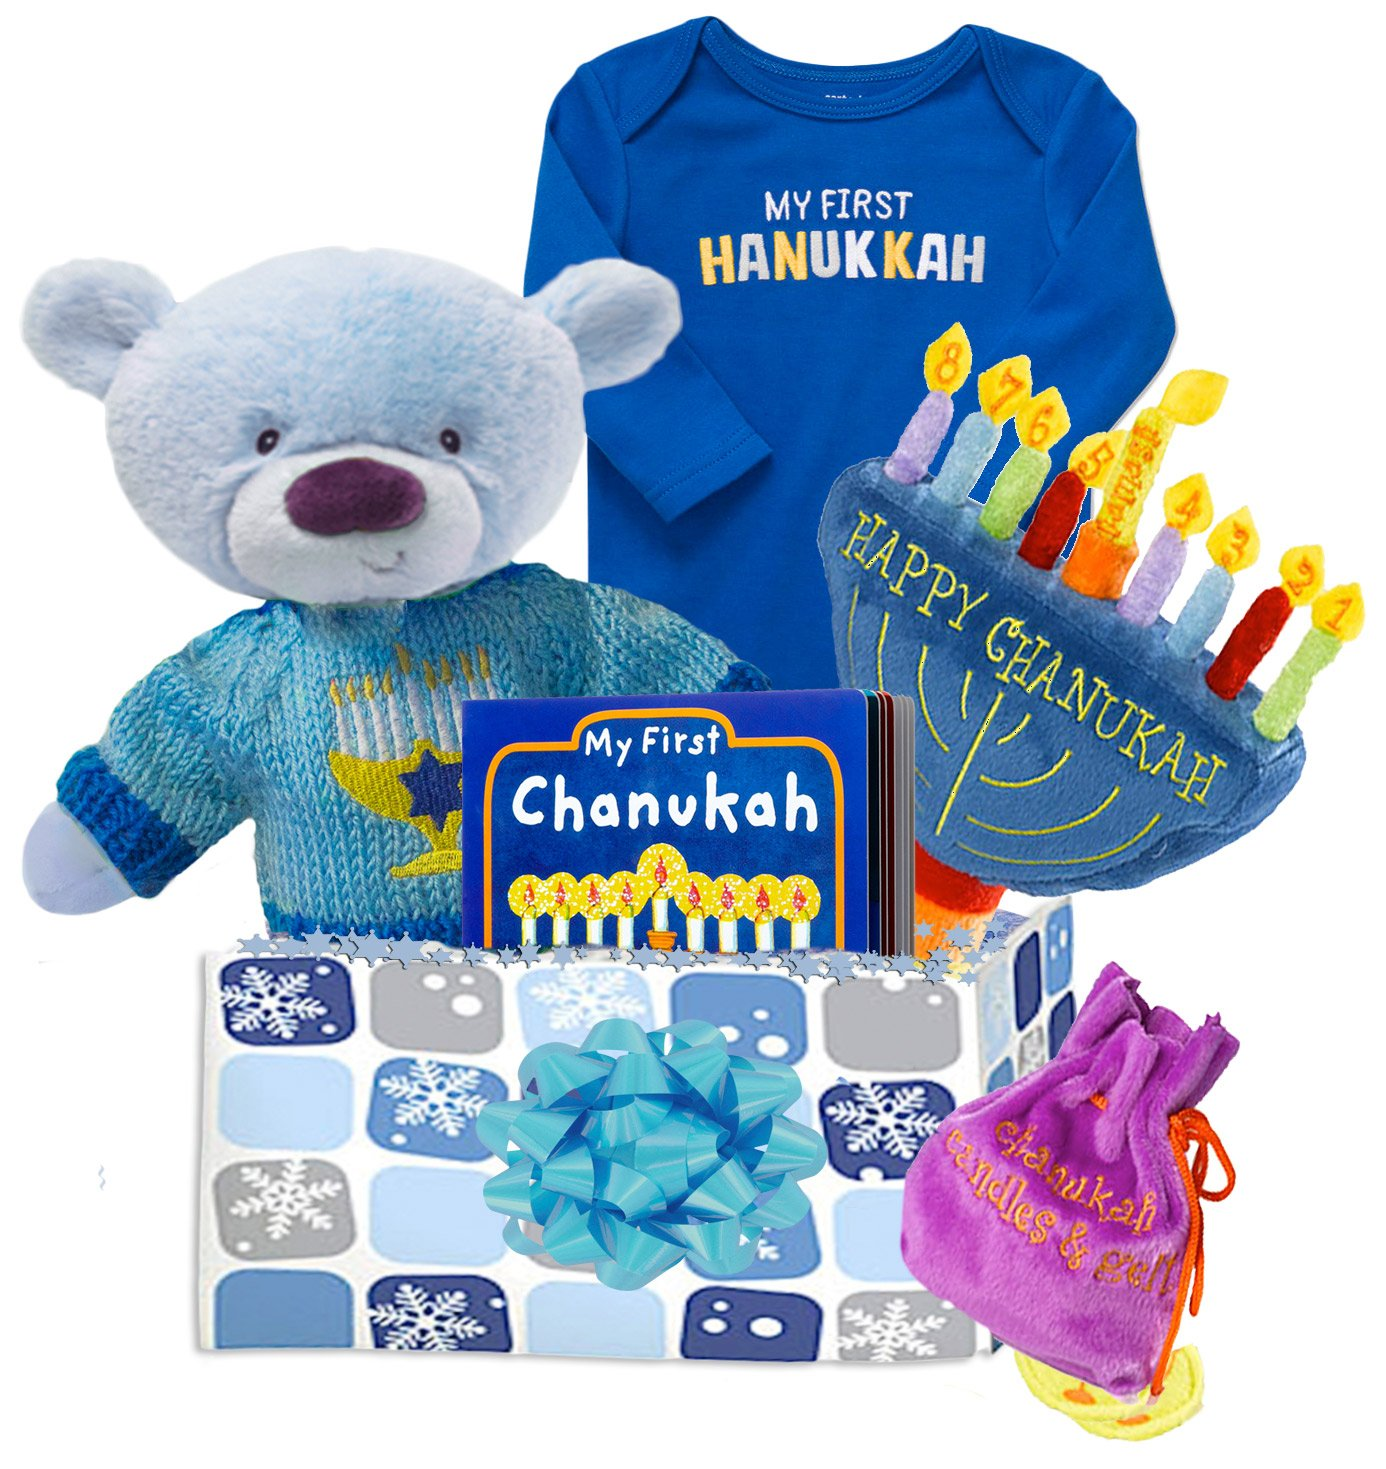 Hanukkah gift basket for baby